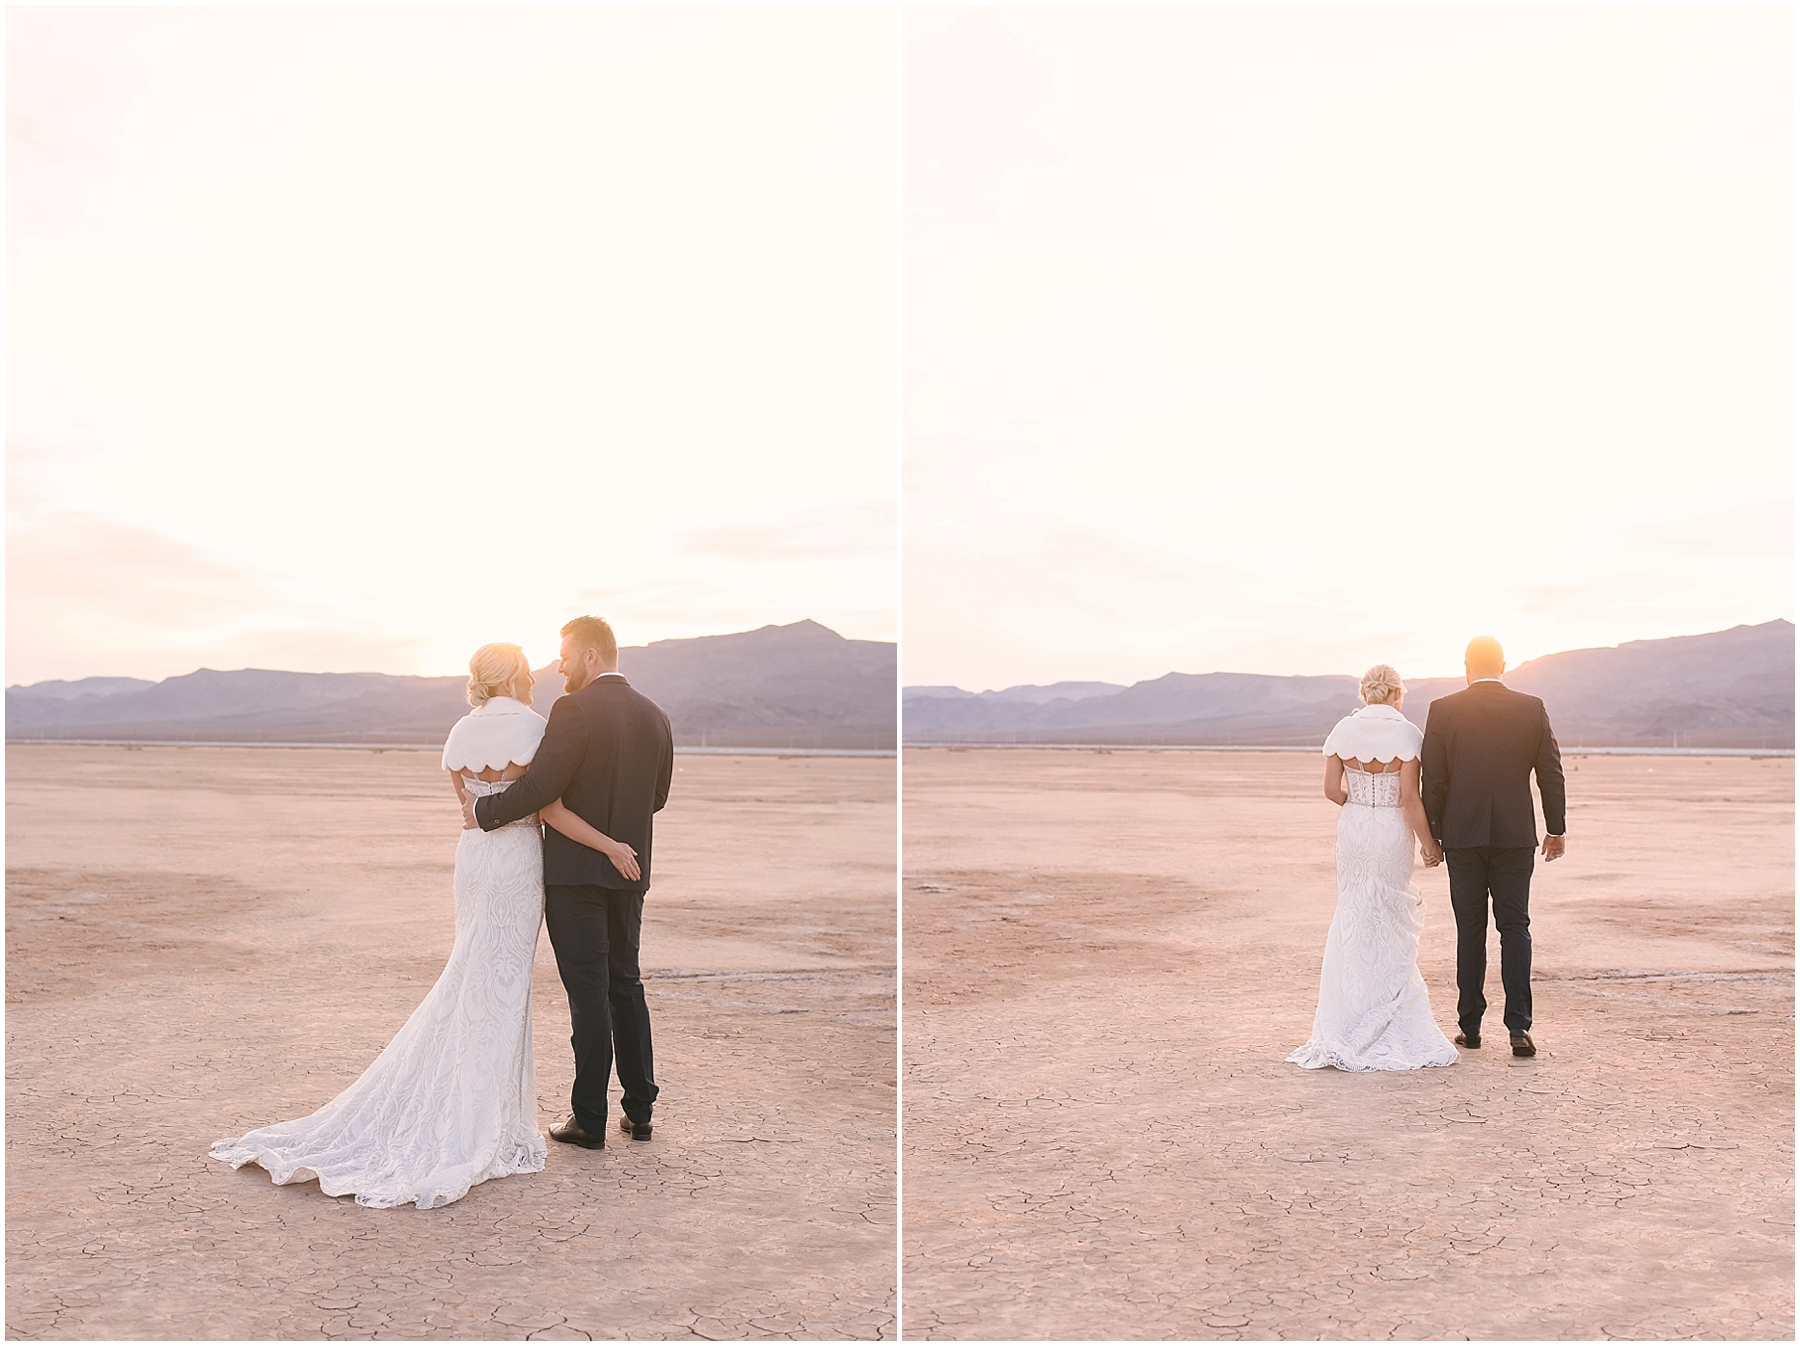 dry_lake_bed_nelson__las_vegas_elopement_photography_blog-10.jpg